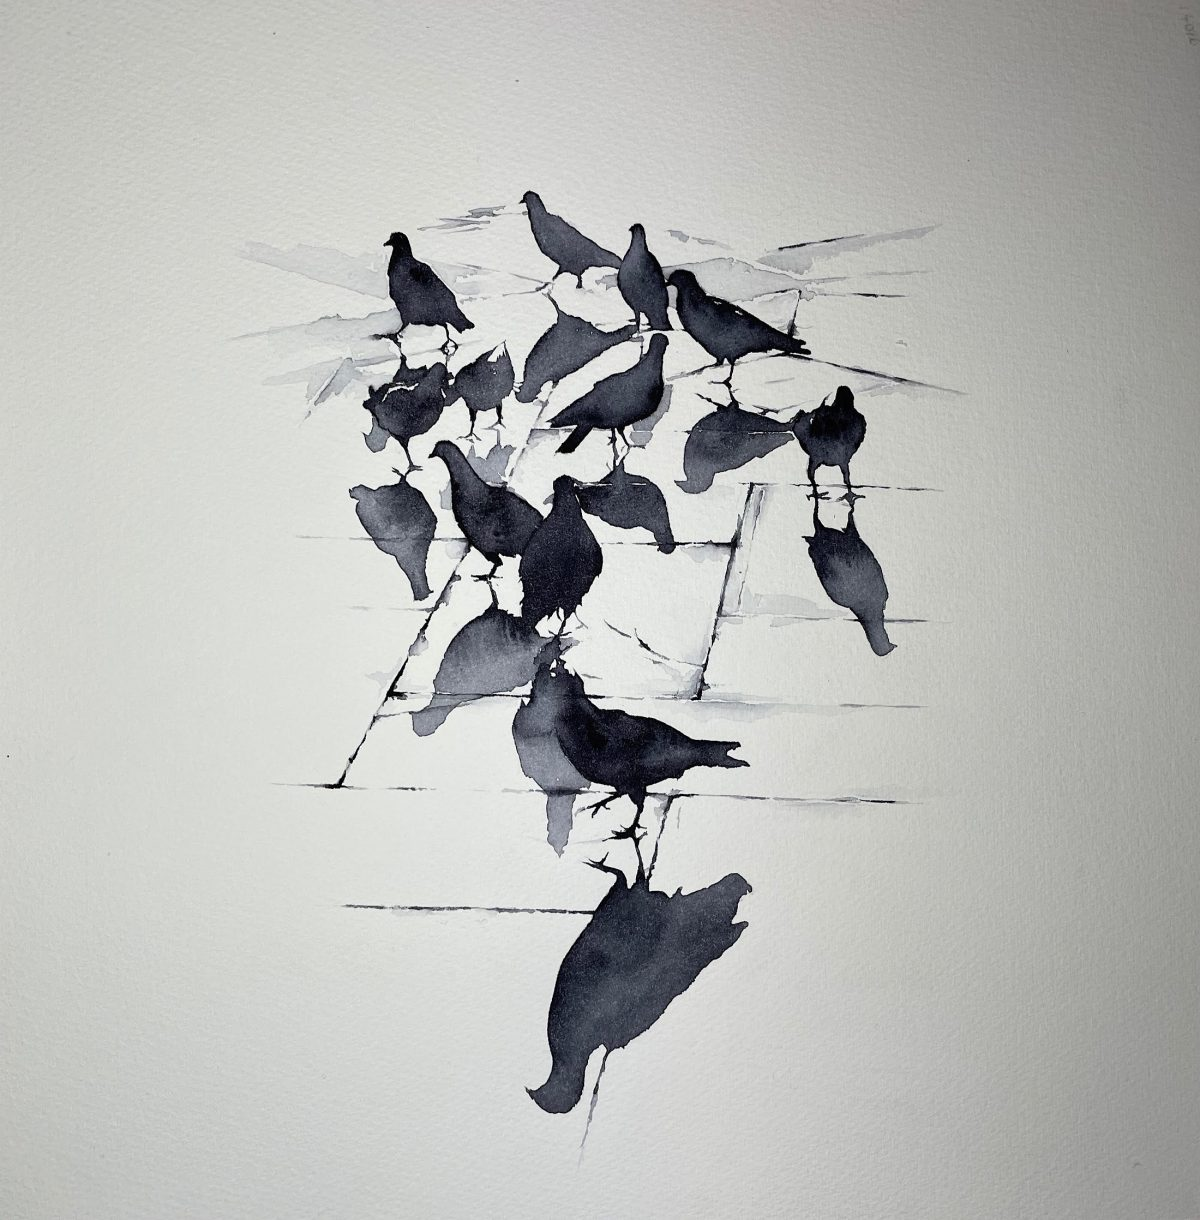 A watercolour painting of pigeons after rainfall